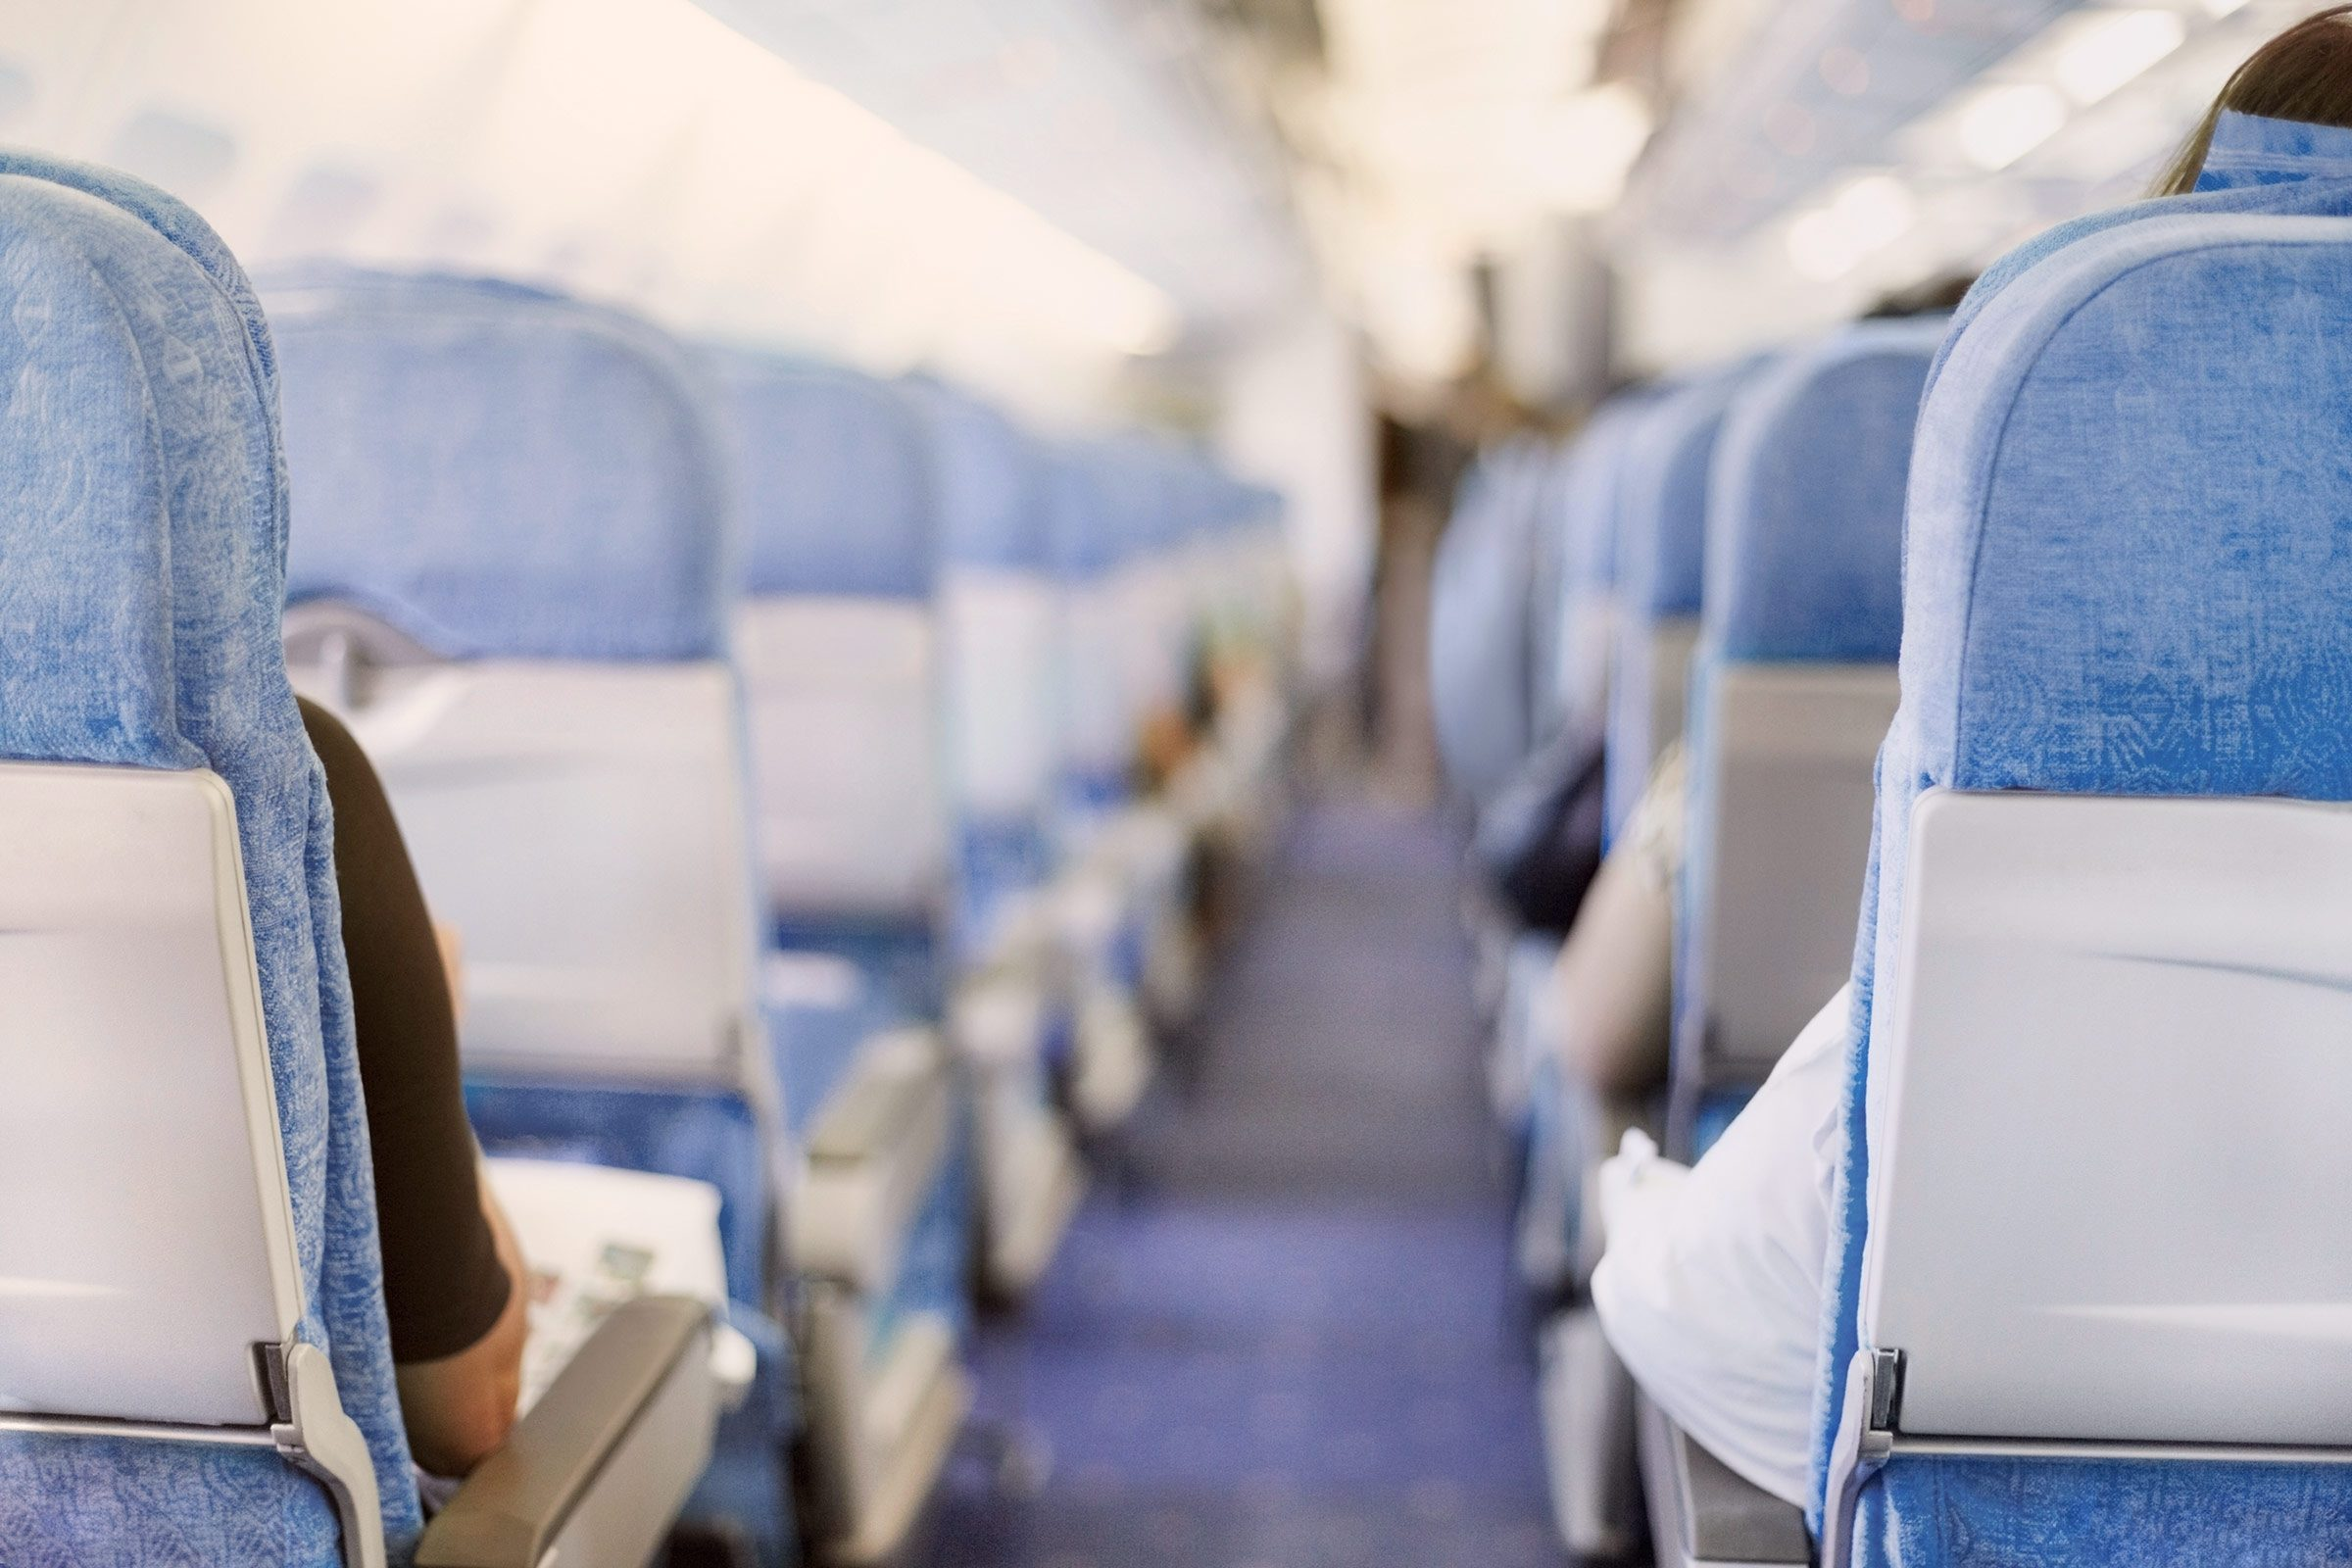 86% Protect Themselves on Planes